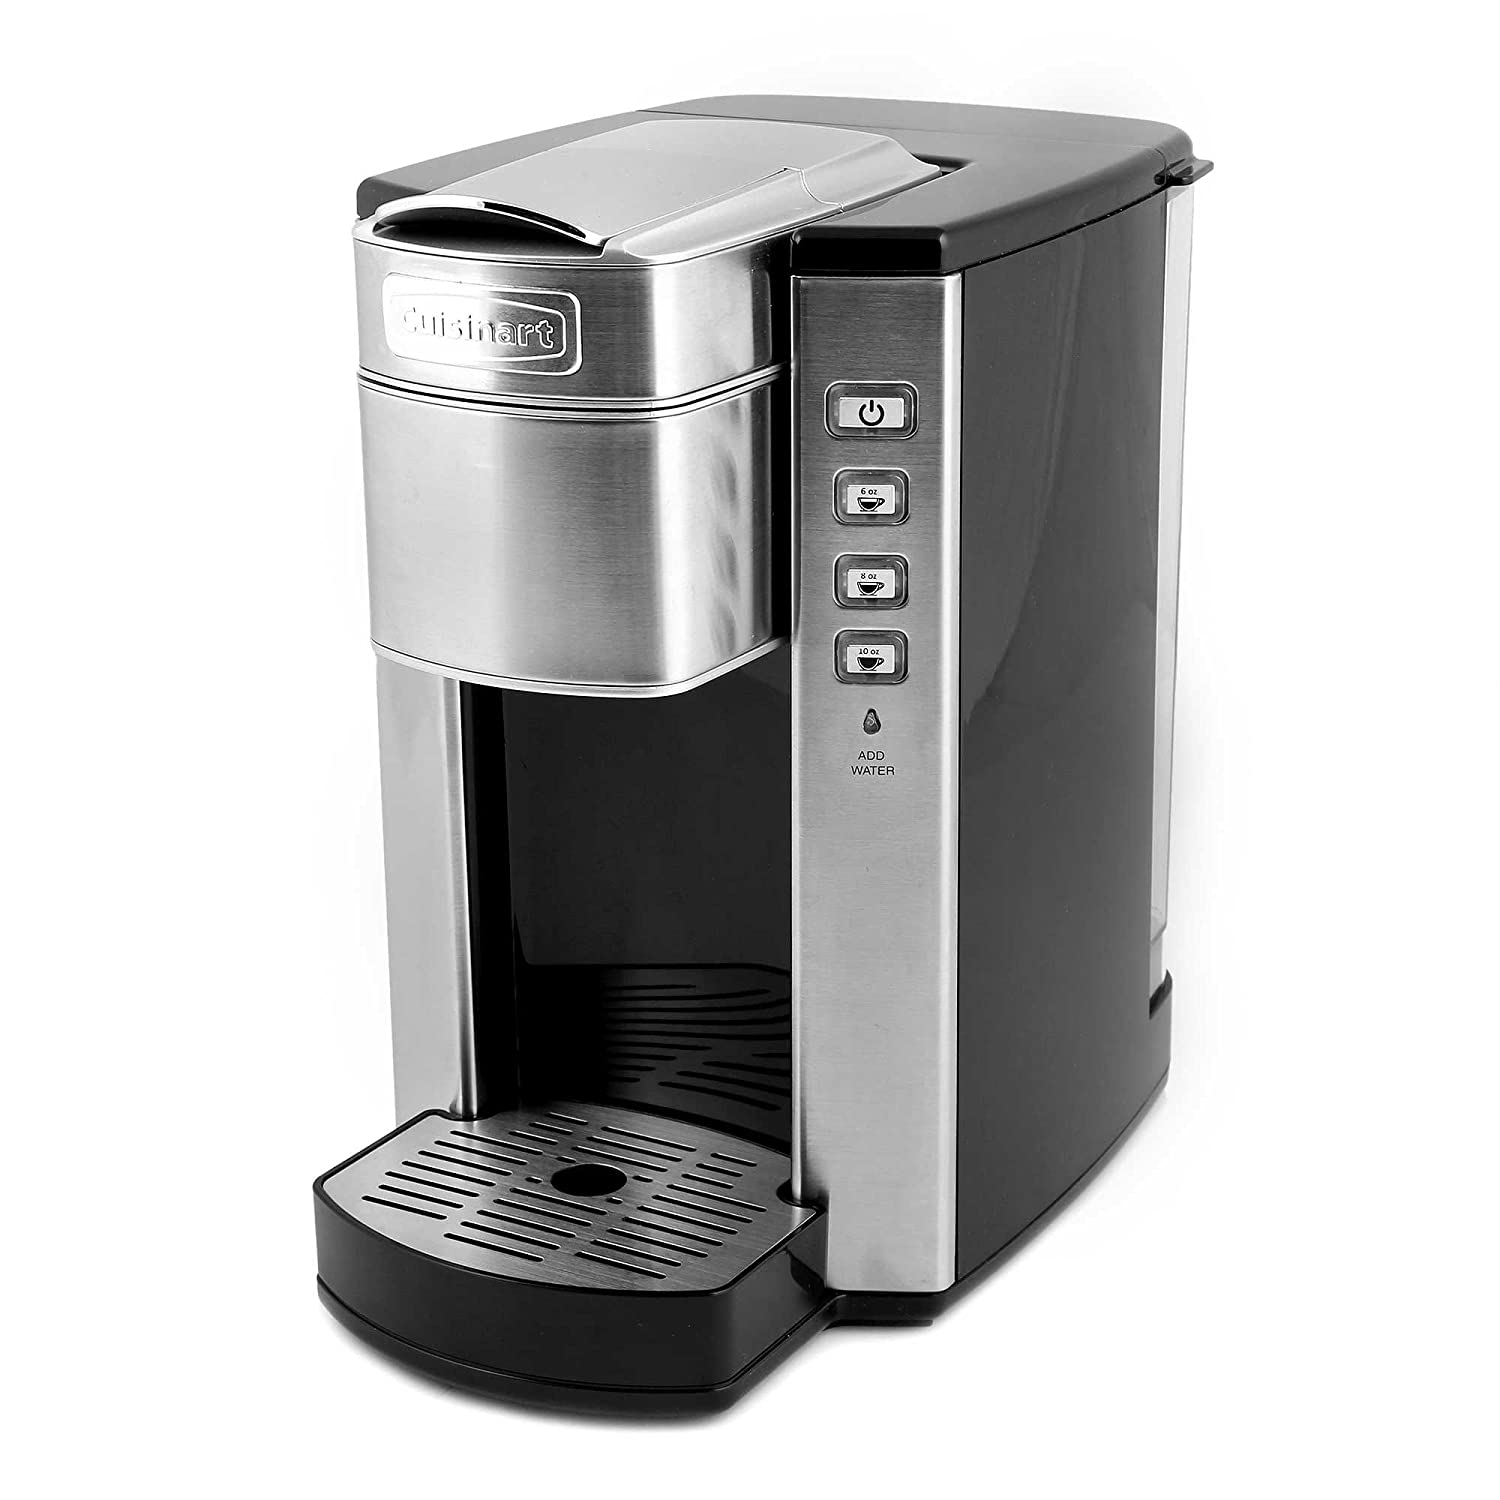 Cuisinart SS-6 Compact Single Serve Coffee Maker (Certified Refurbished)